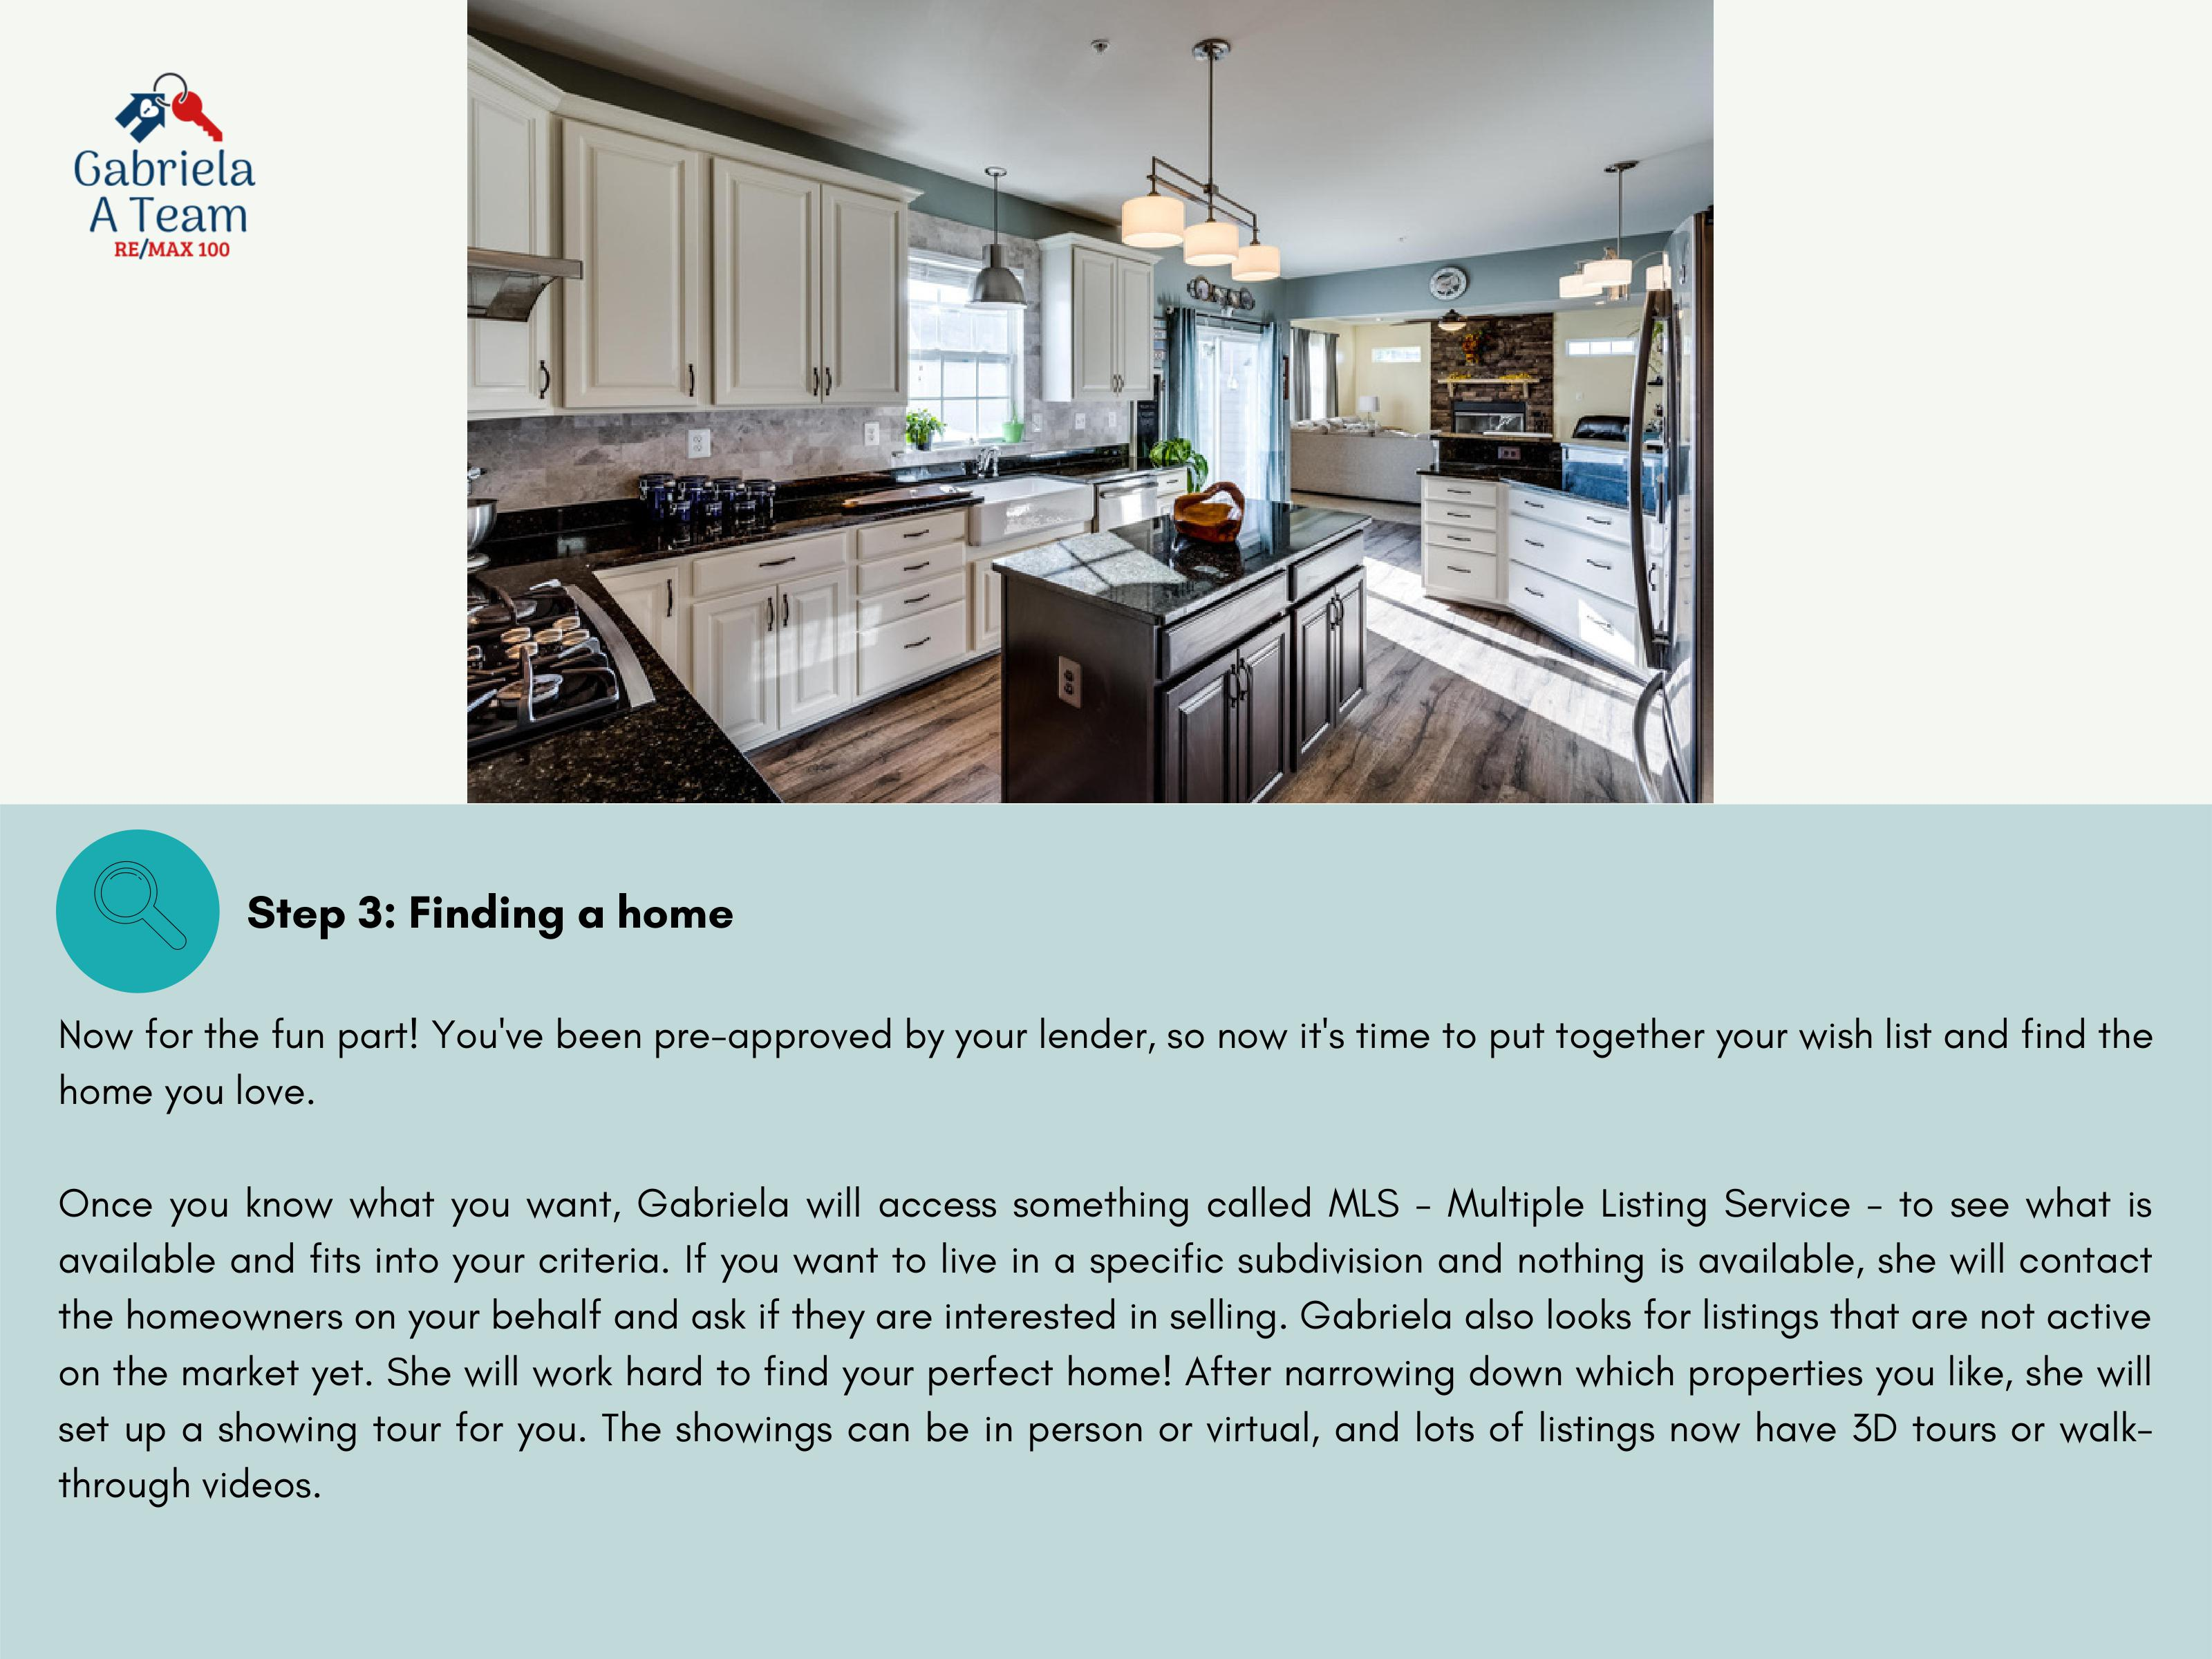 5th slide of home buying guide 3rd setp